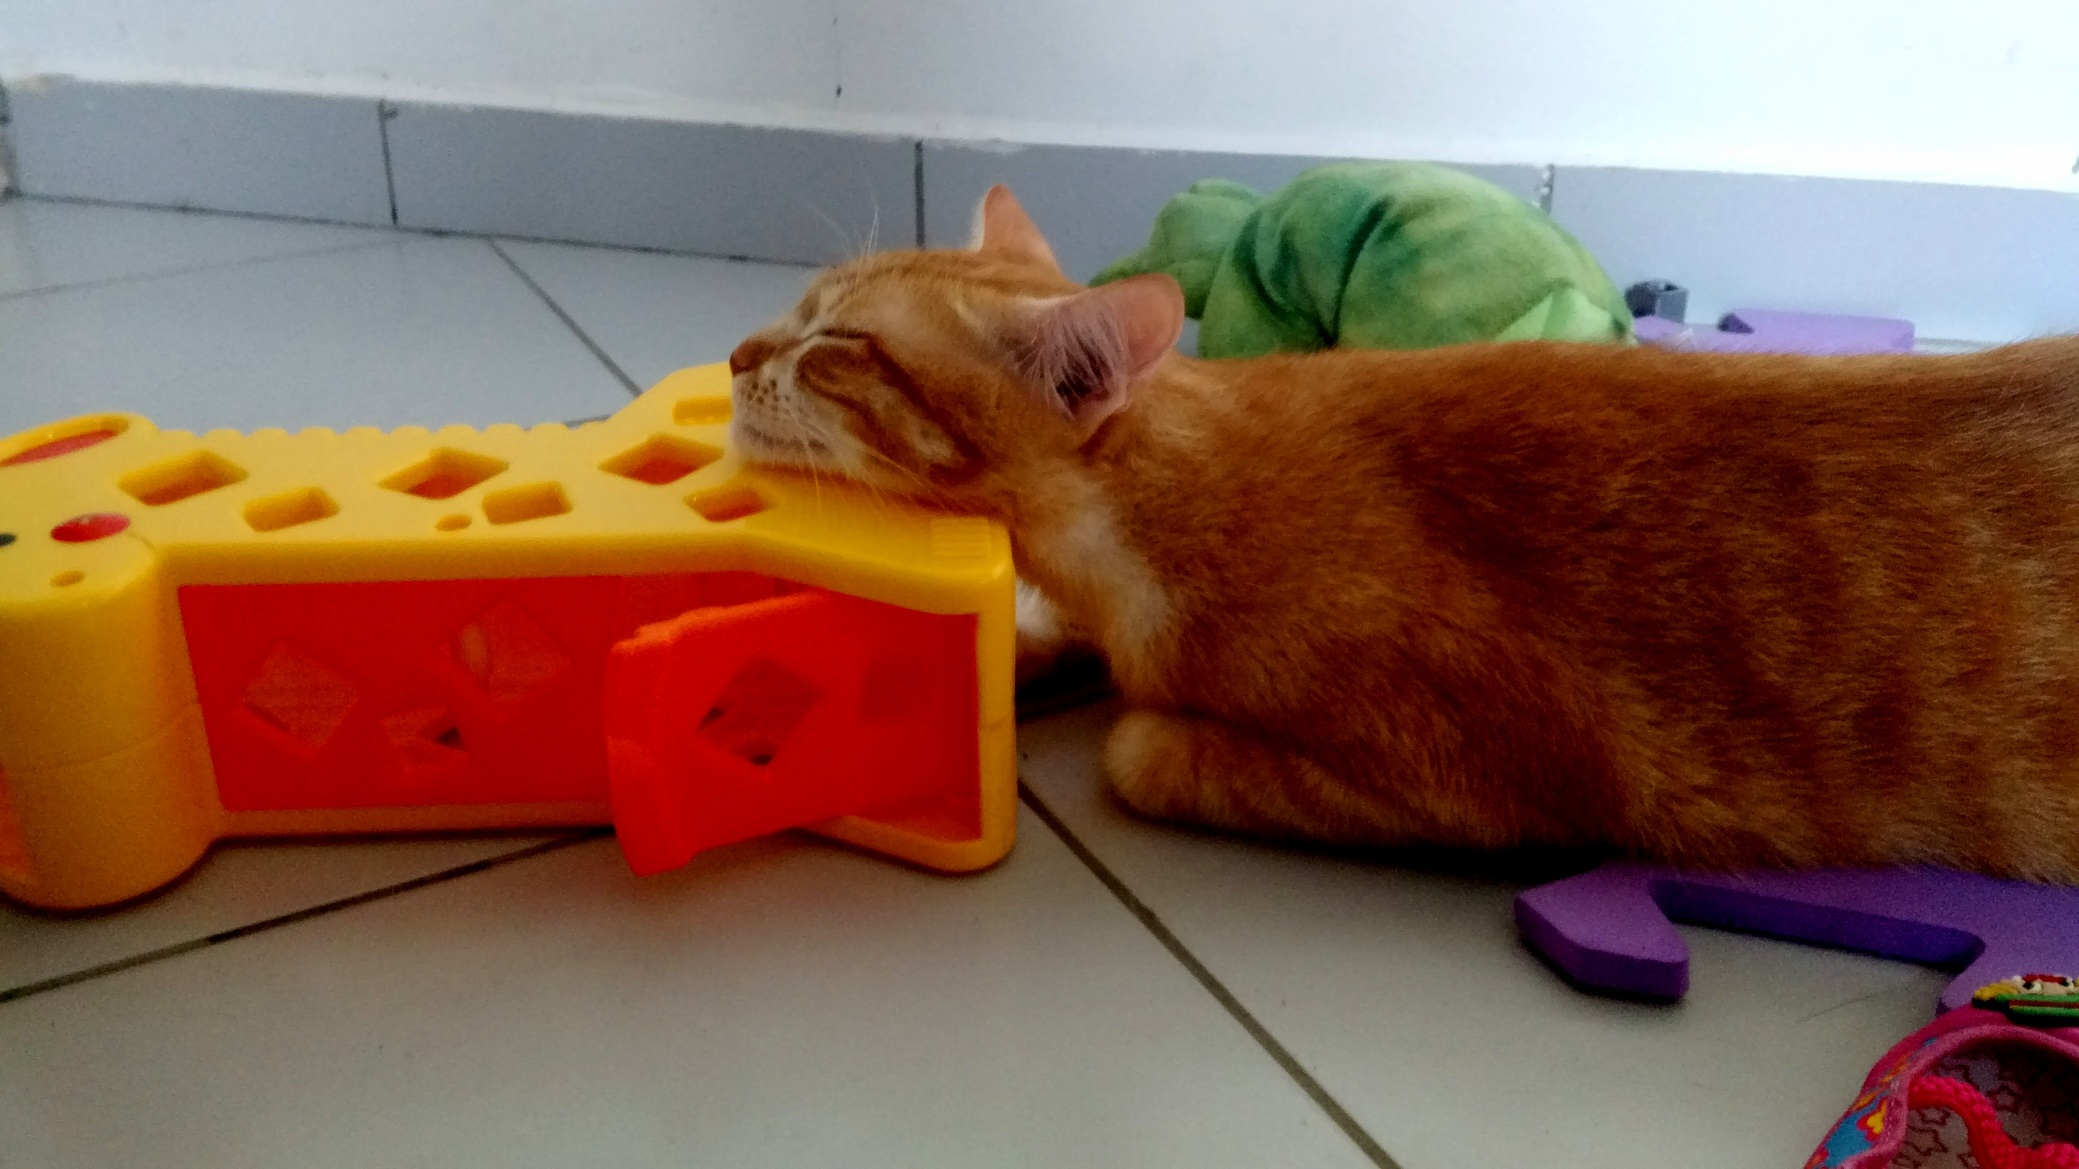 Thats my cat sleeping on my daughters toys